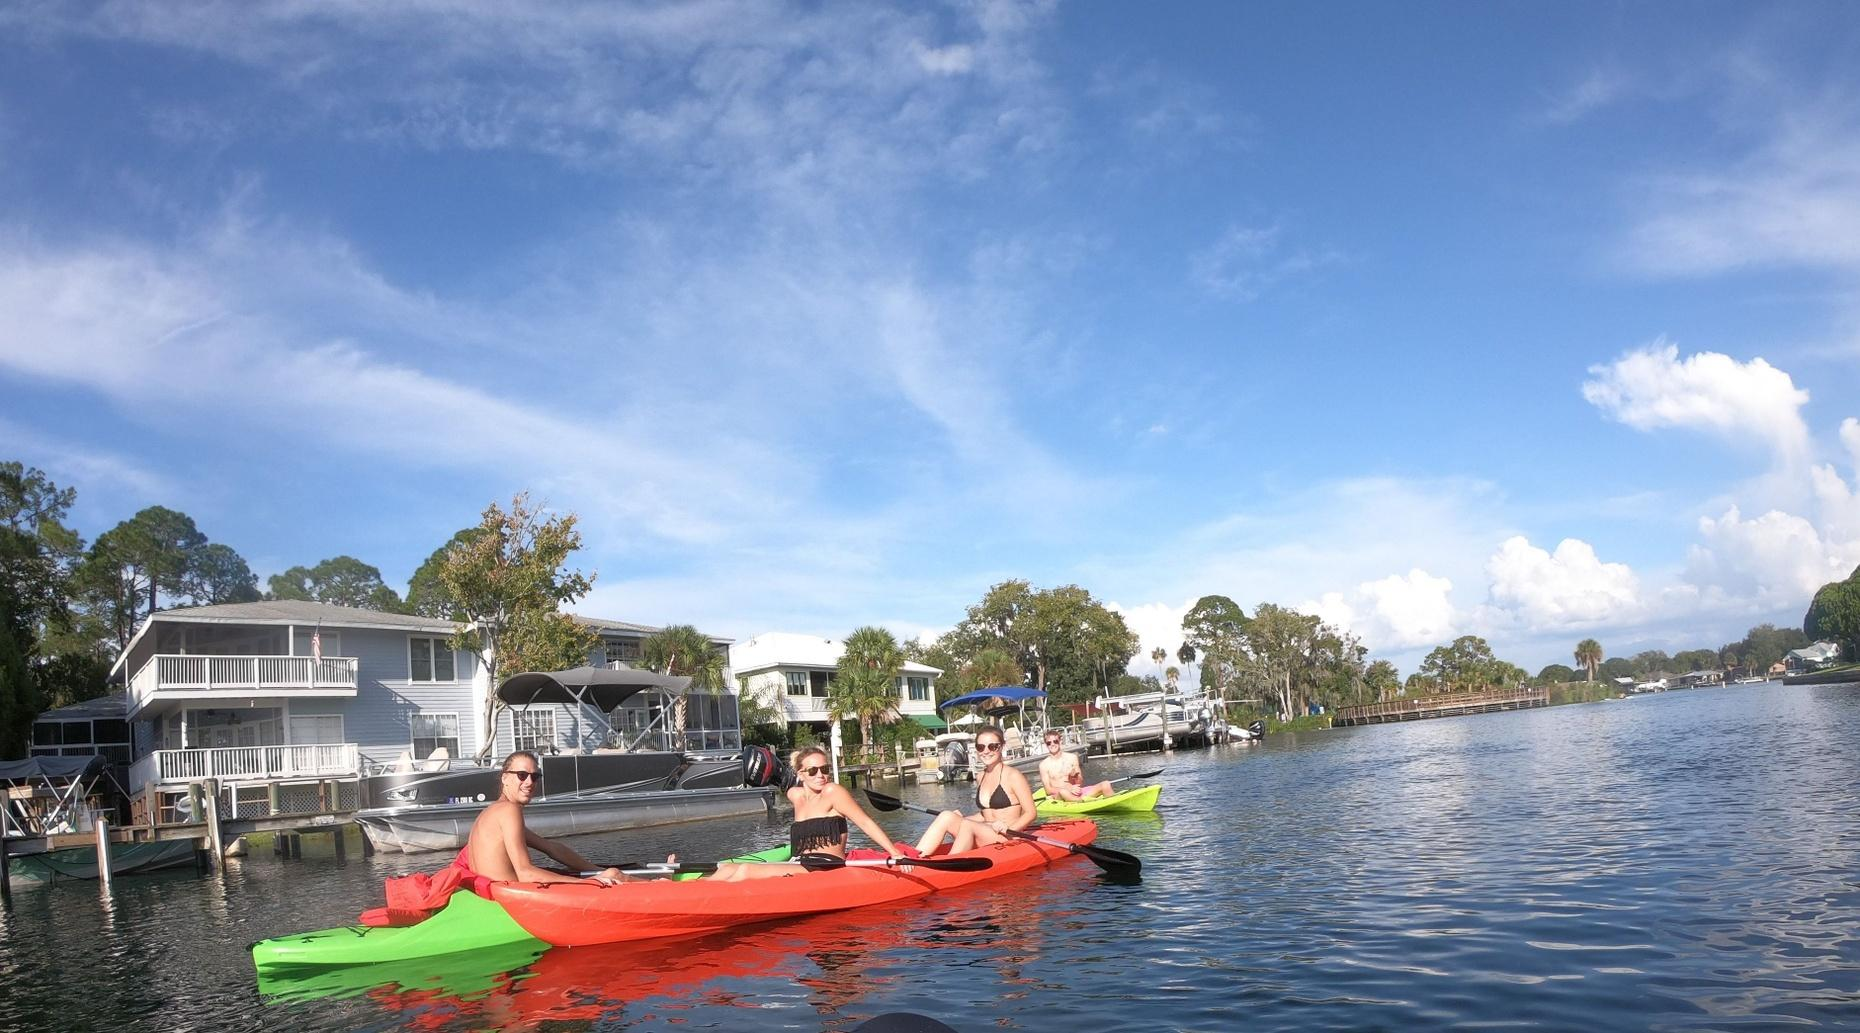 2-Hour Single Kayak Rental and Manatee Viewing in Crystal River